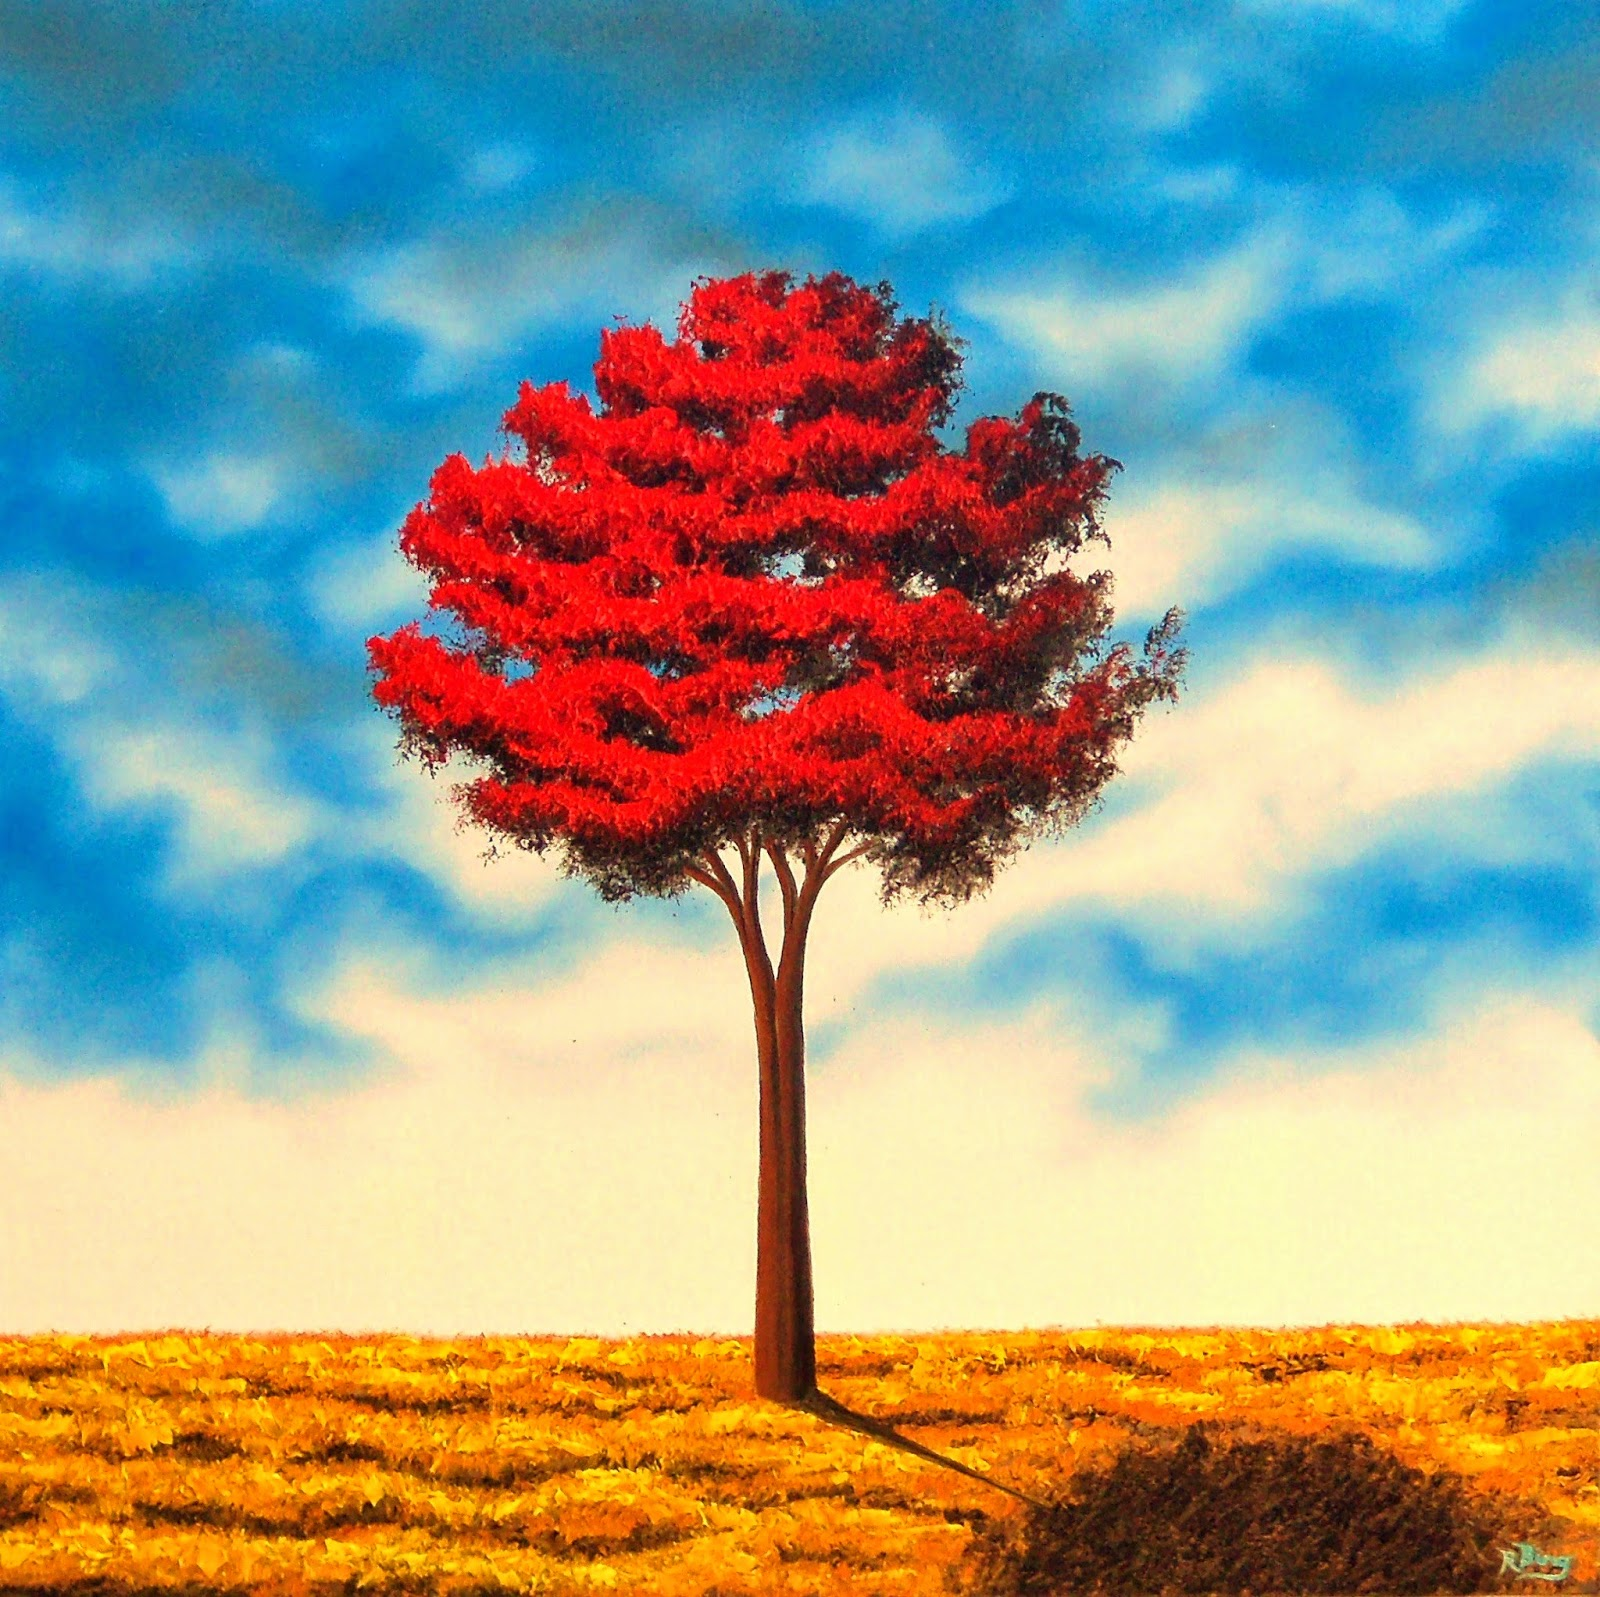 Contemporary Art Oil Painting, Red Tree Painting, Landscape Painting, 36 x  36, Original Oil Painting